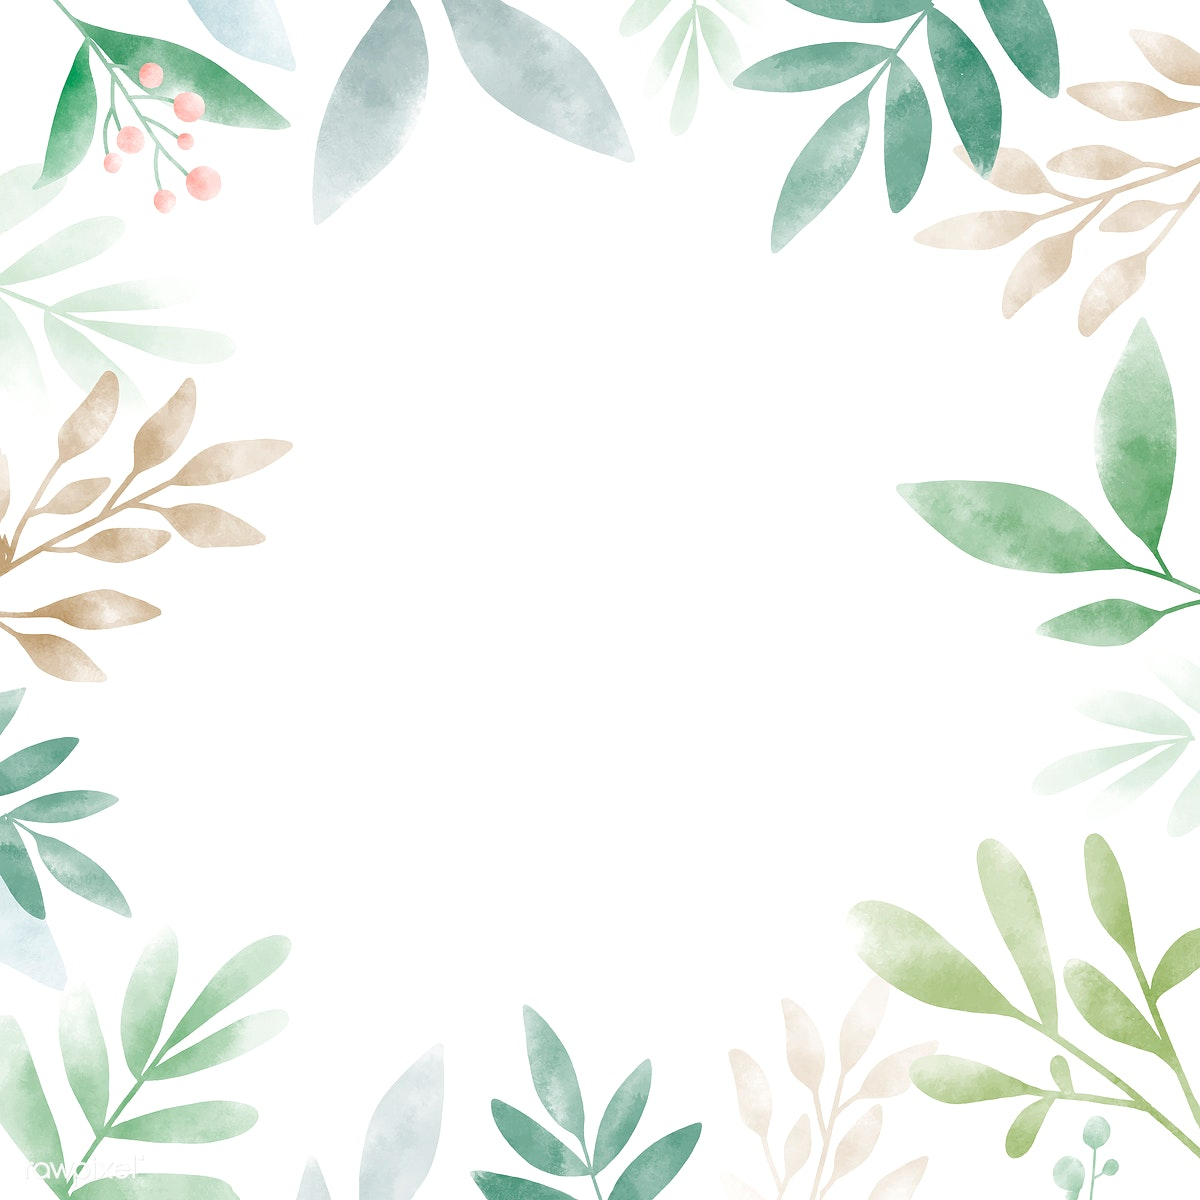 d3b9b2d7023c Download premium illustration of Watercolor leaves with copy space design